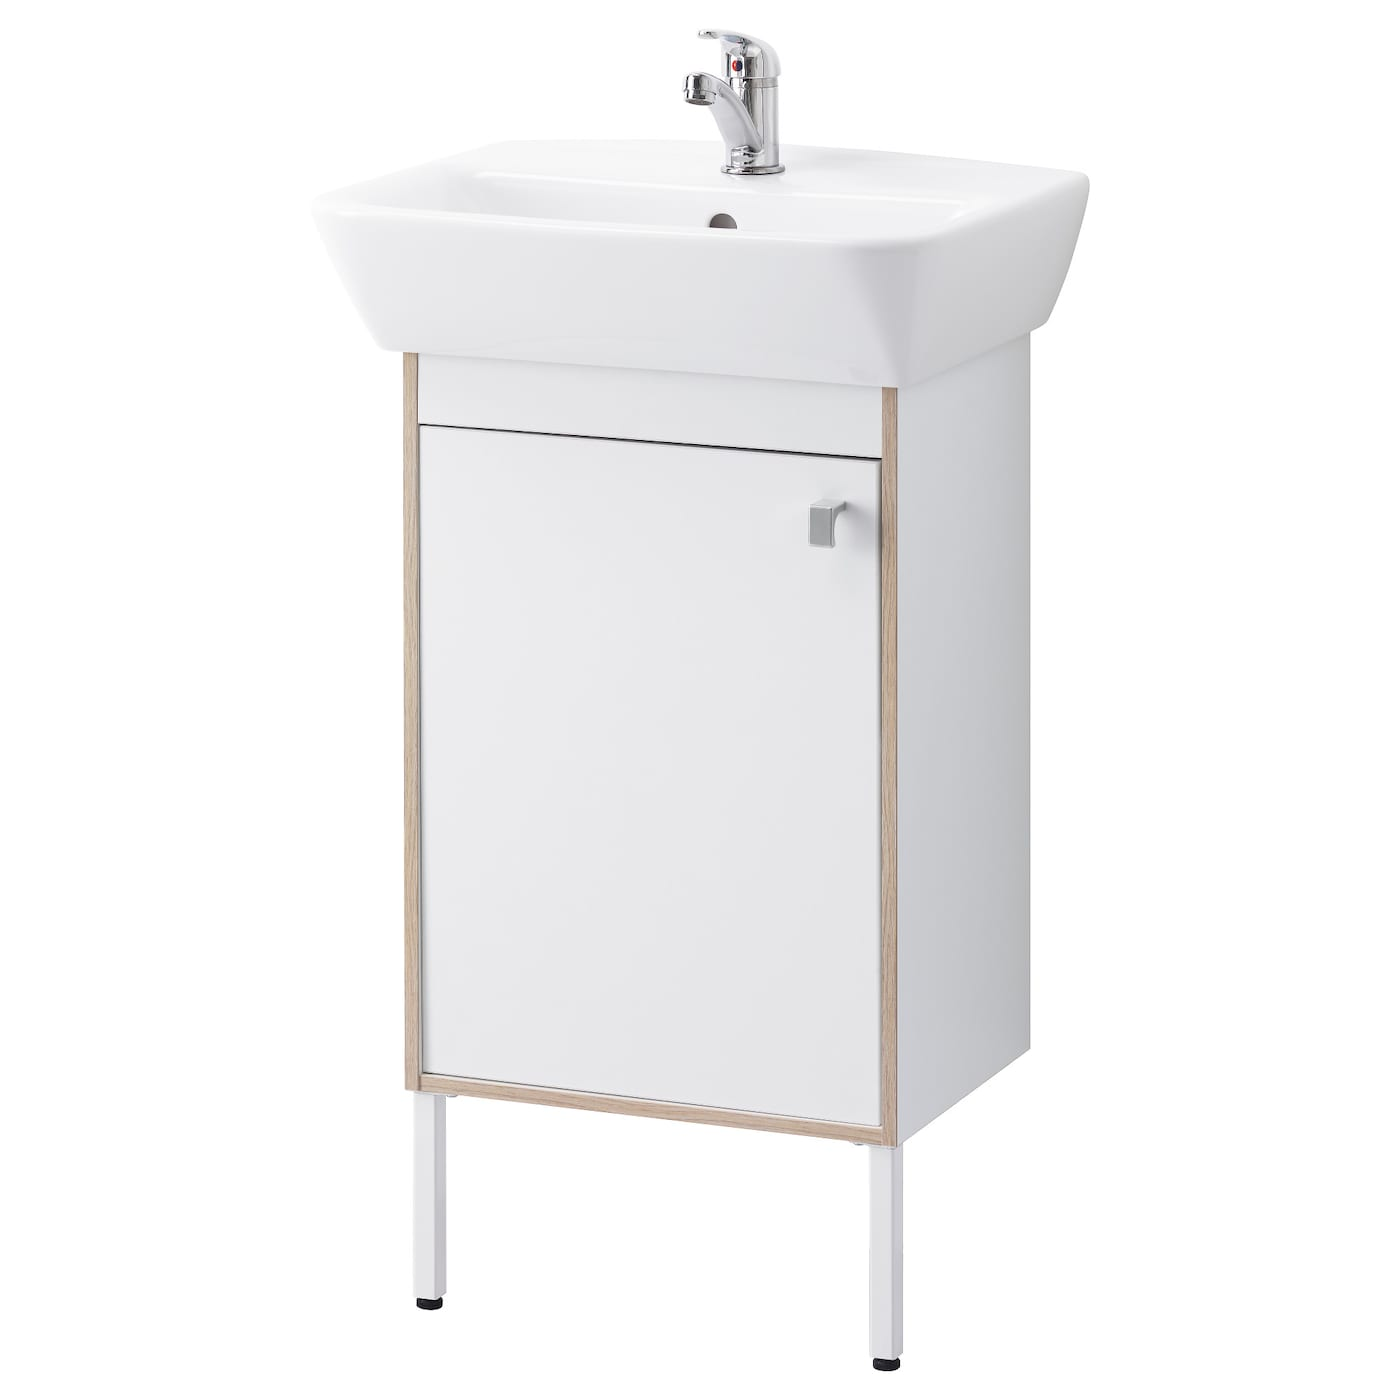 ikea bathroom sink cabinets tyngen washbasin cabinet with 1 door white 51x40x88 cm ikea 17540